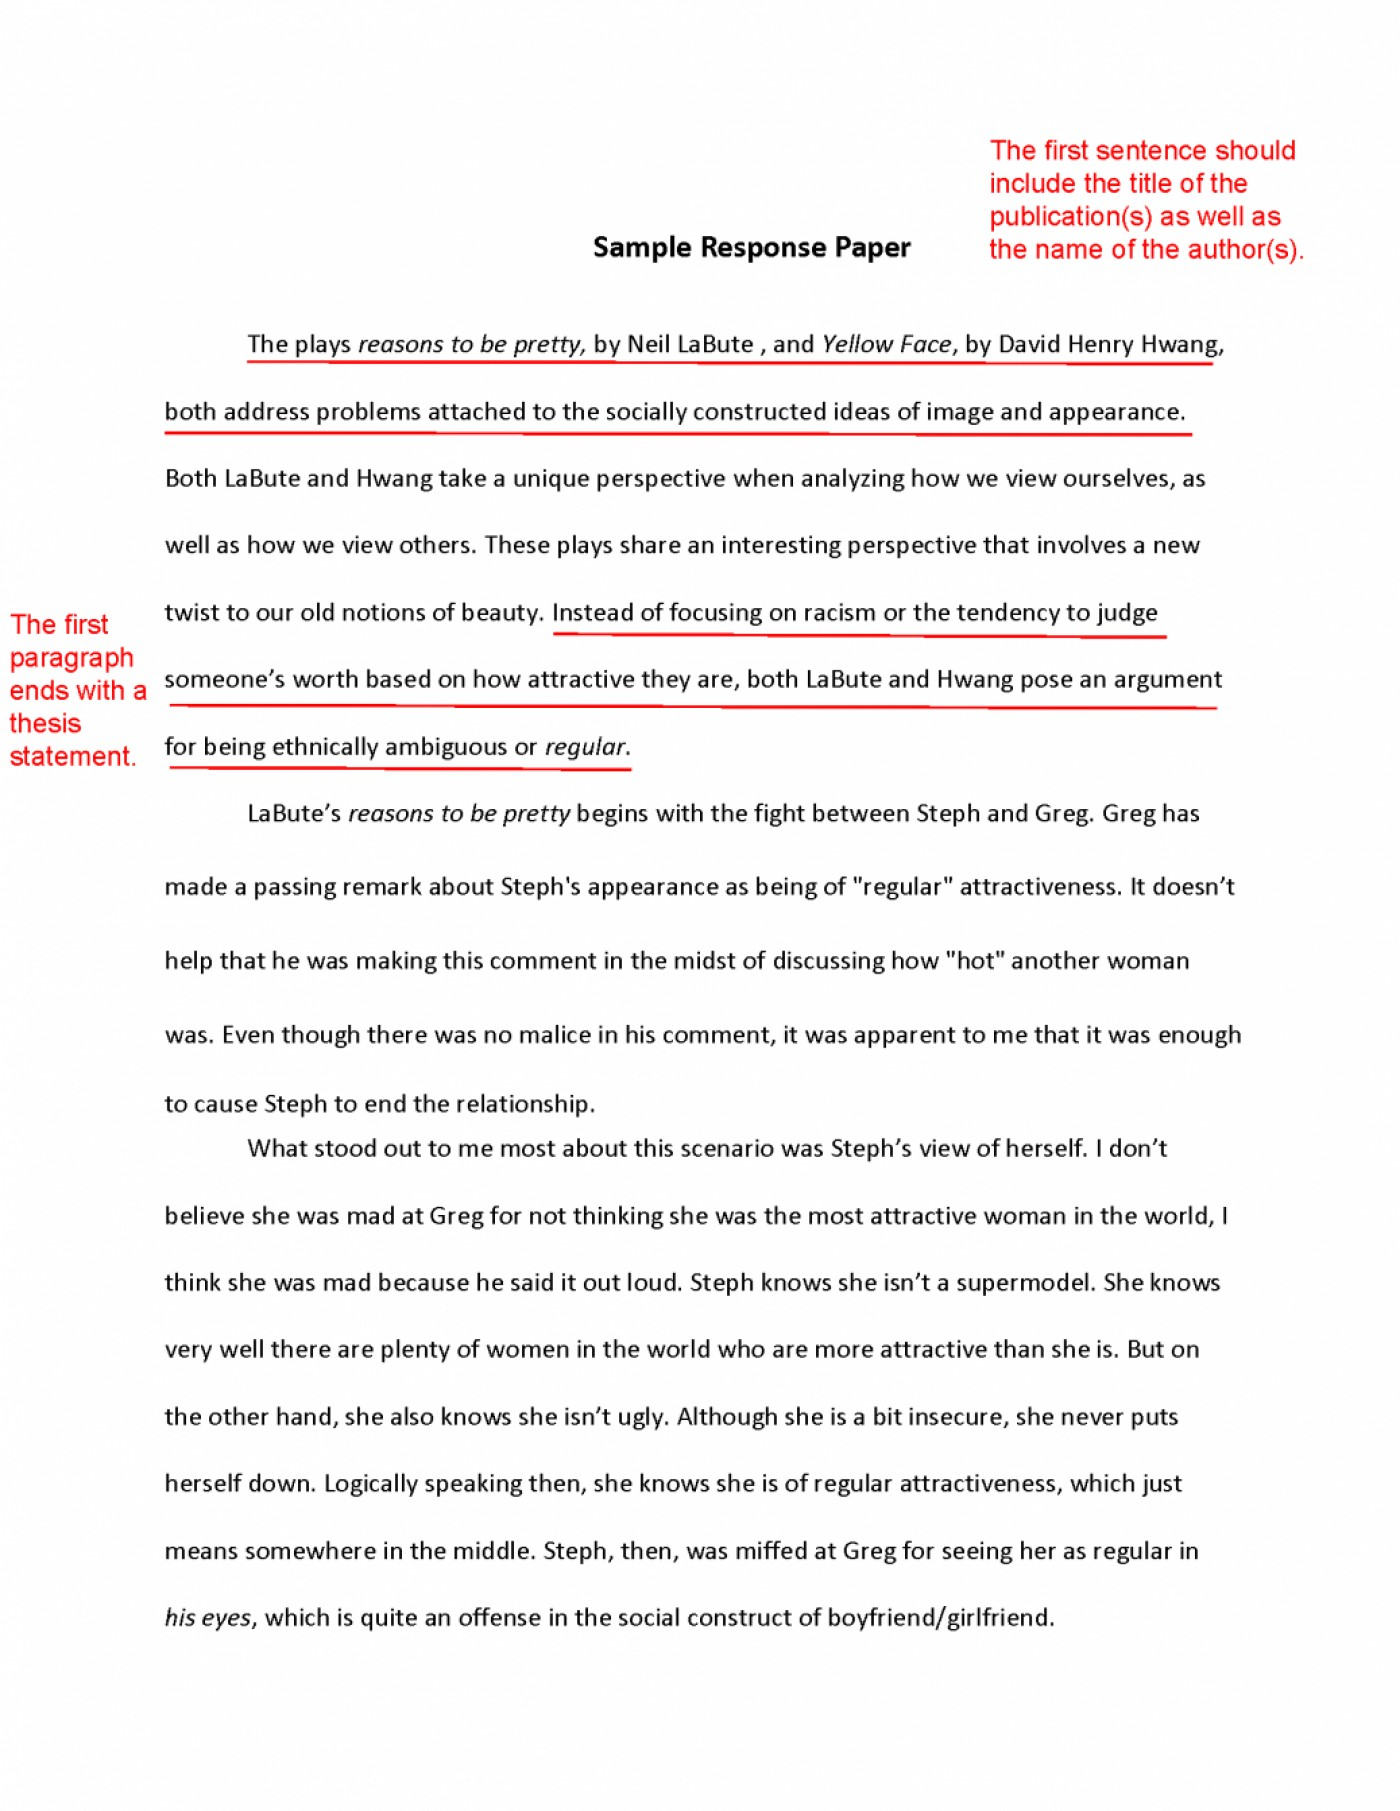 Essay Writing Format For High School Students  My First Day Of High School Essay also Yellow Wallpaper Analysis Essay  Examples Of Research Paper Introductions Proposal Essay  Yellow Wallpaper Essays